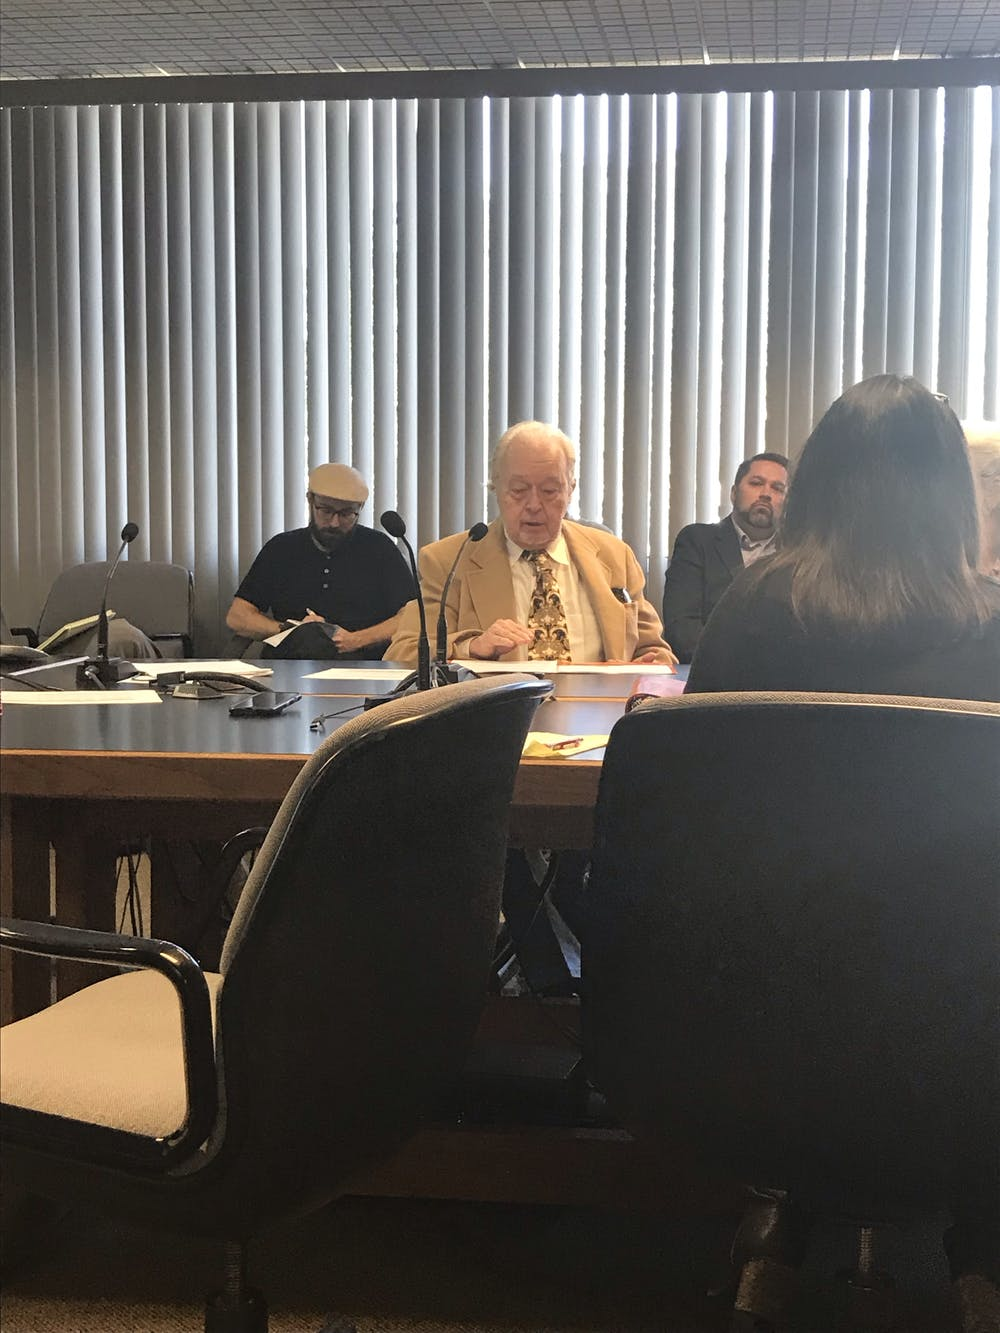 """<div dir=""""auto"""">Bruce Blackwell, 77, of Gainesville, spoke in support of the conversion therapy ban. He said after hearing the story of a man who experienced suicidal thoughts after undergoing the therapy, it was up to him to right the wrongs of others.</div>"""